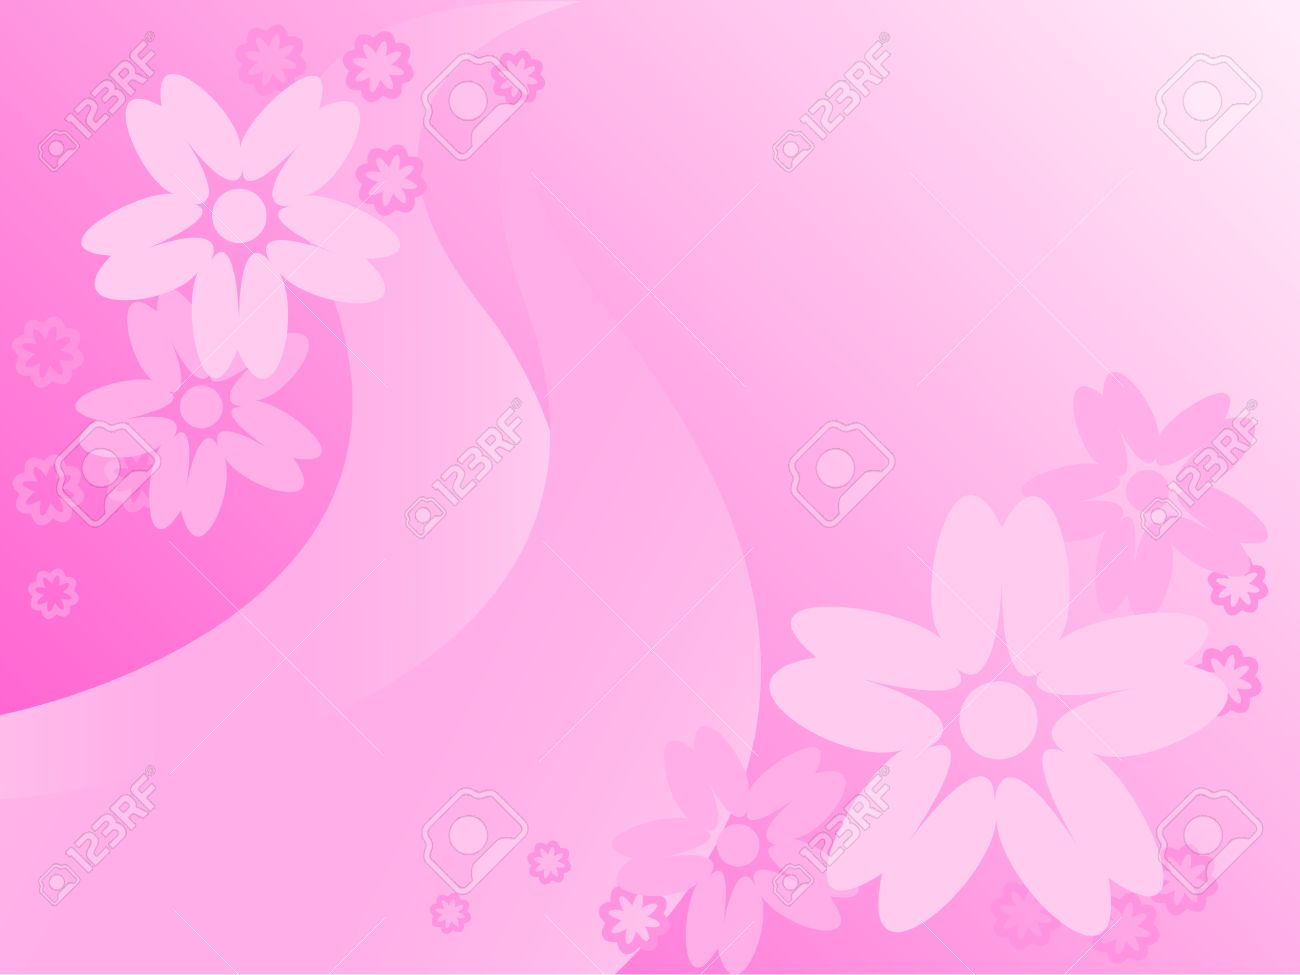 Dissymetrically Placed Flowers On A Pink Abstract Background Royalty